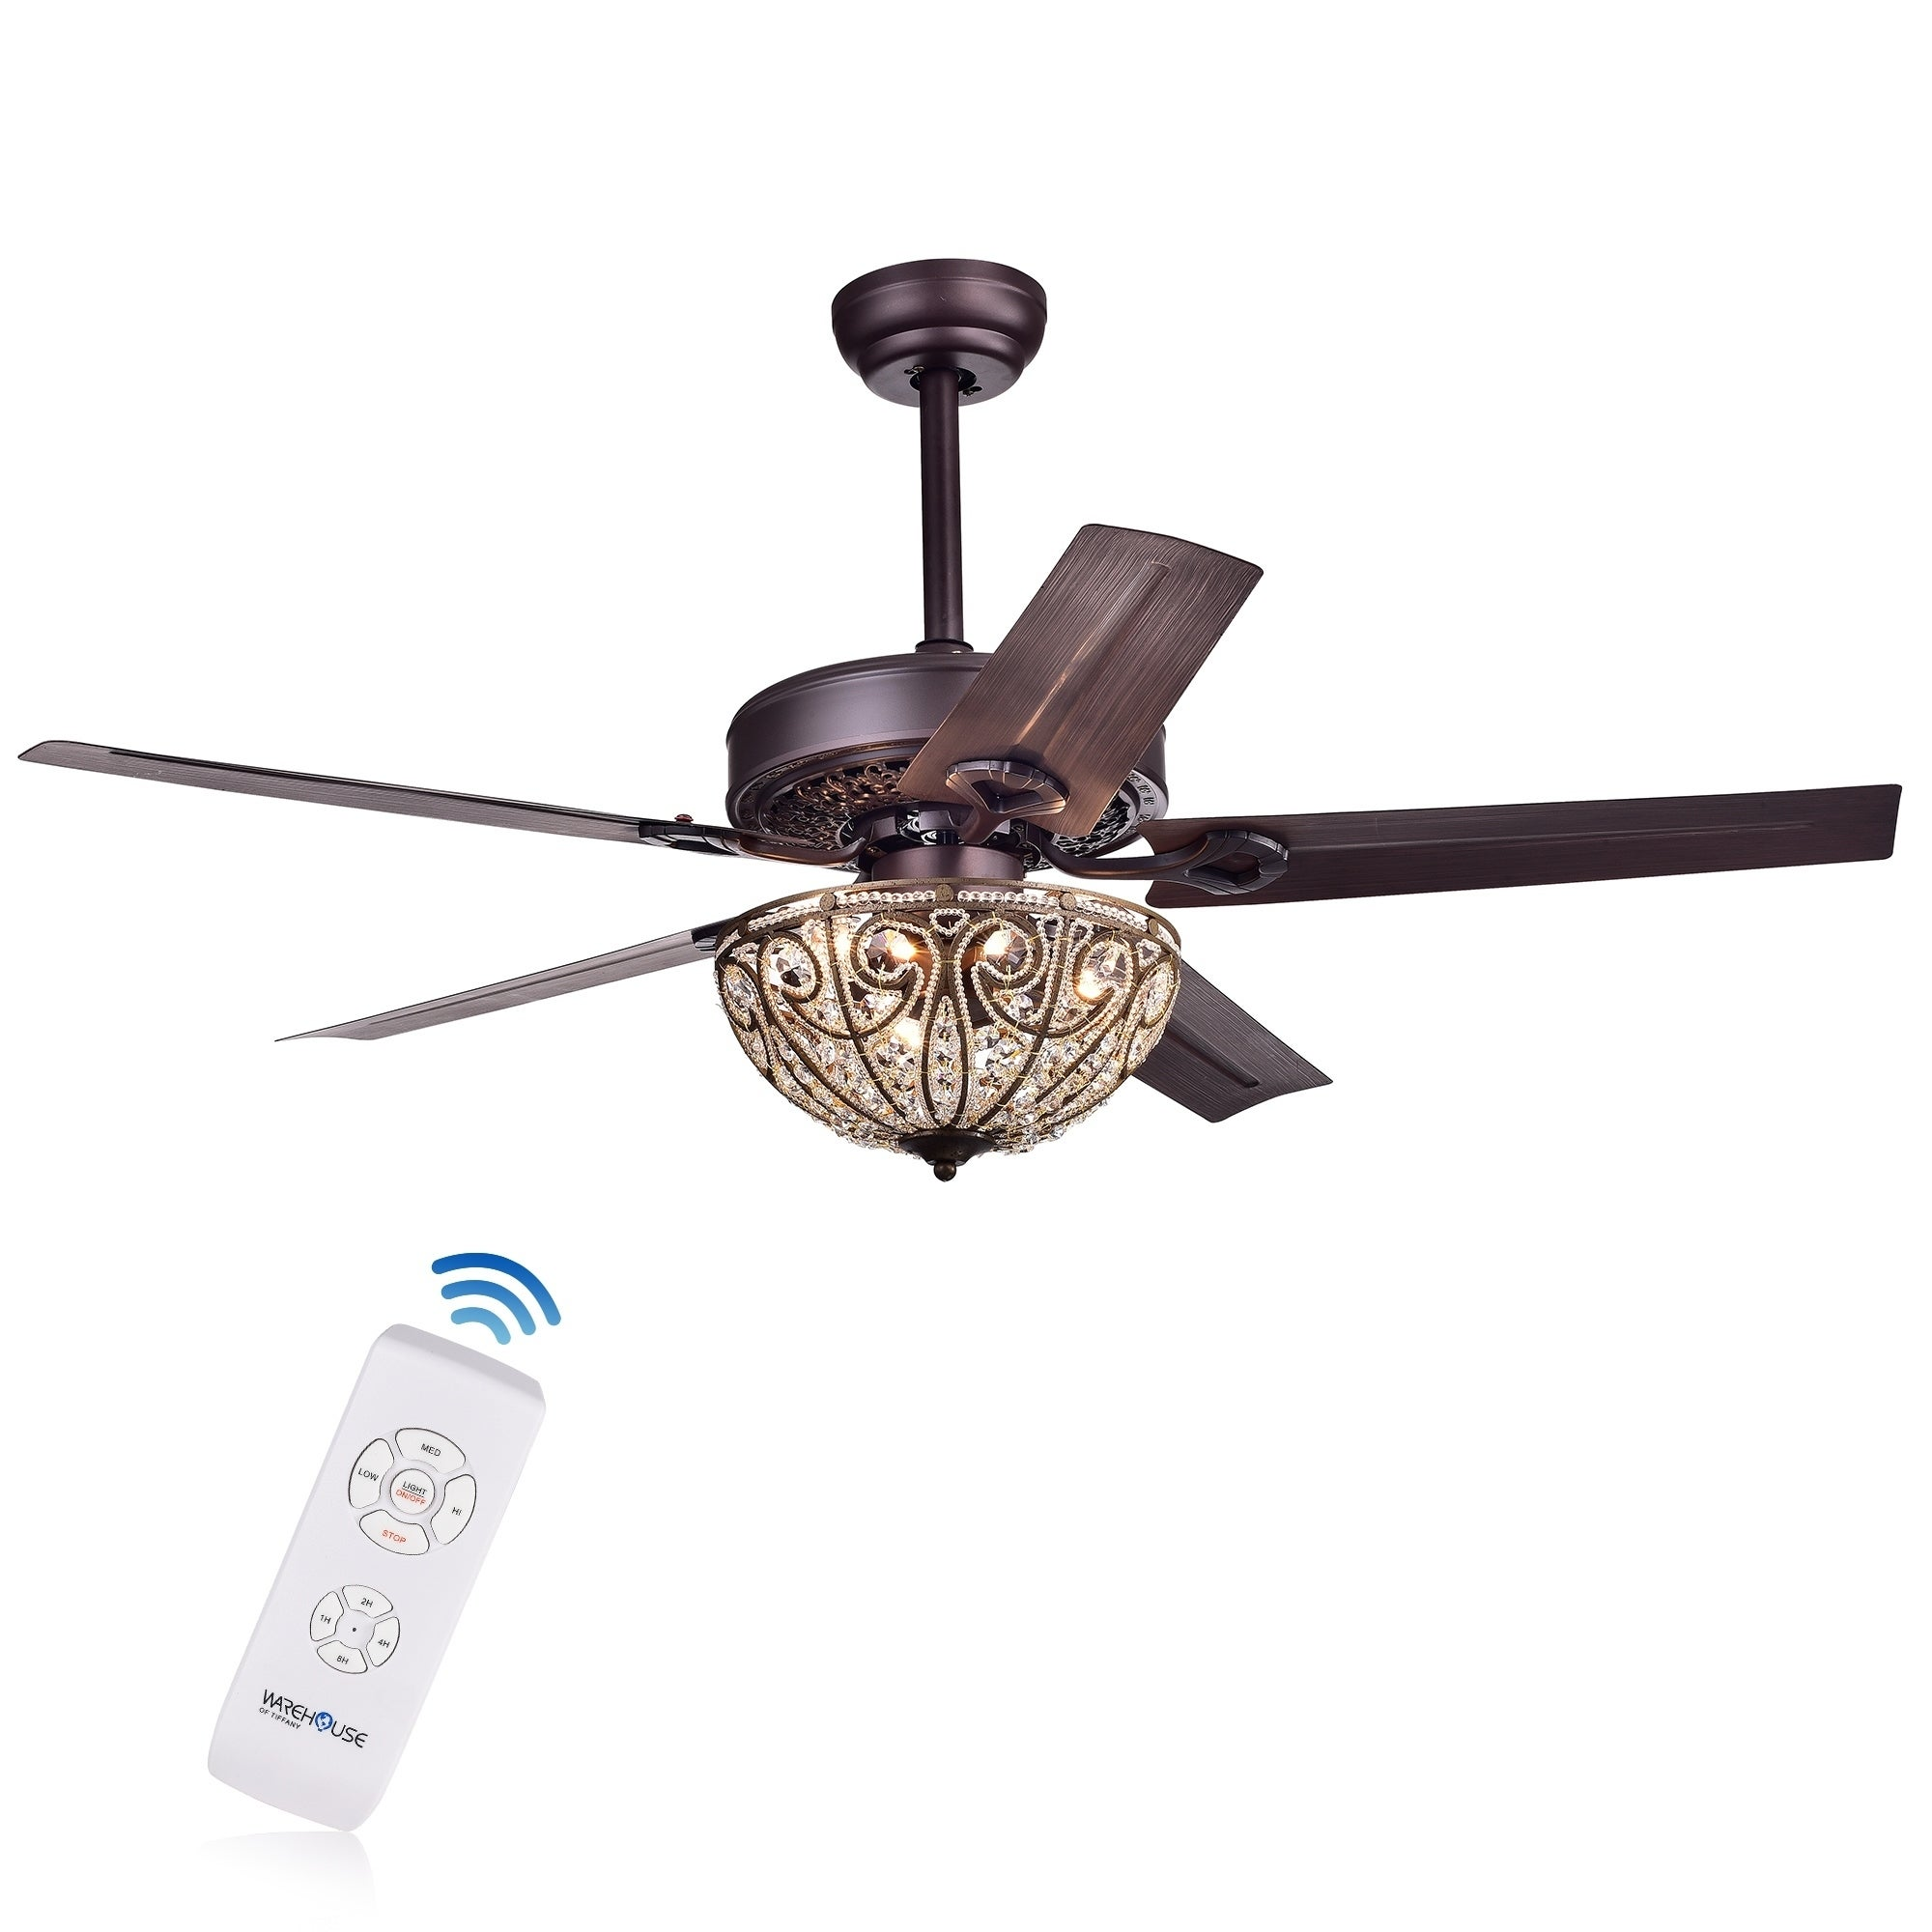 decorative ceiling fans with remote remote control shop catalina bronzefinished 5blade 48inch crystal ceiling fan optional remote on sale free shipping today overstockcom 10412248